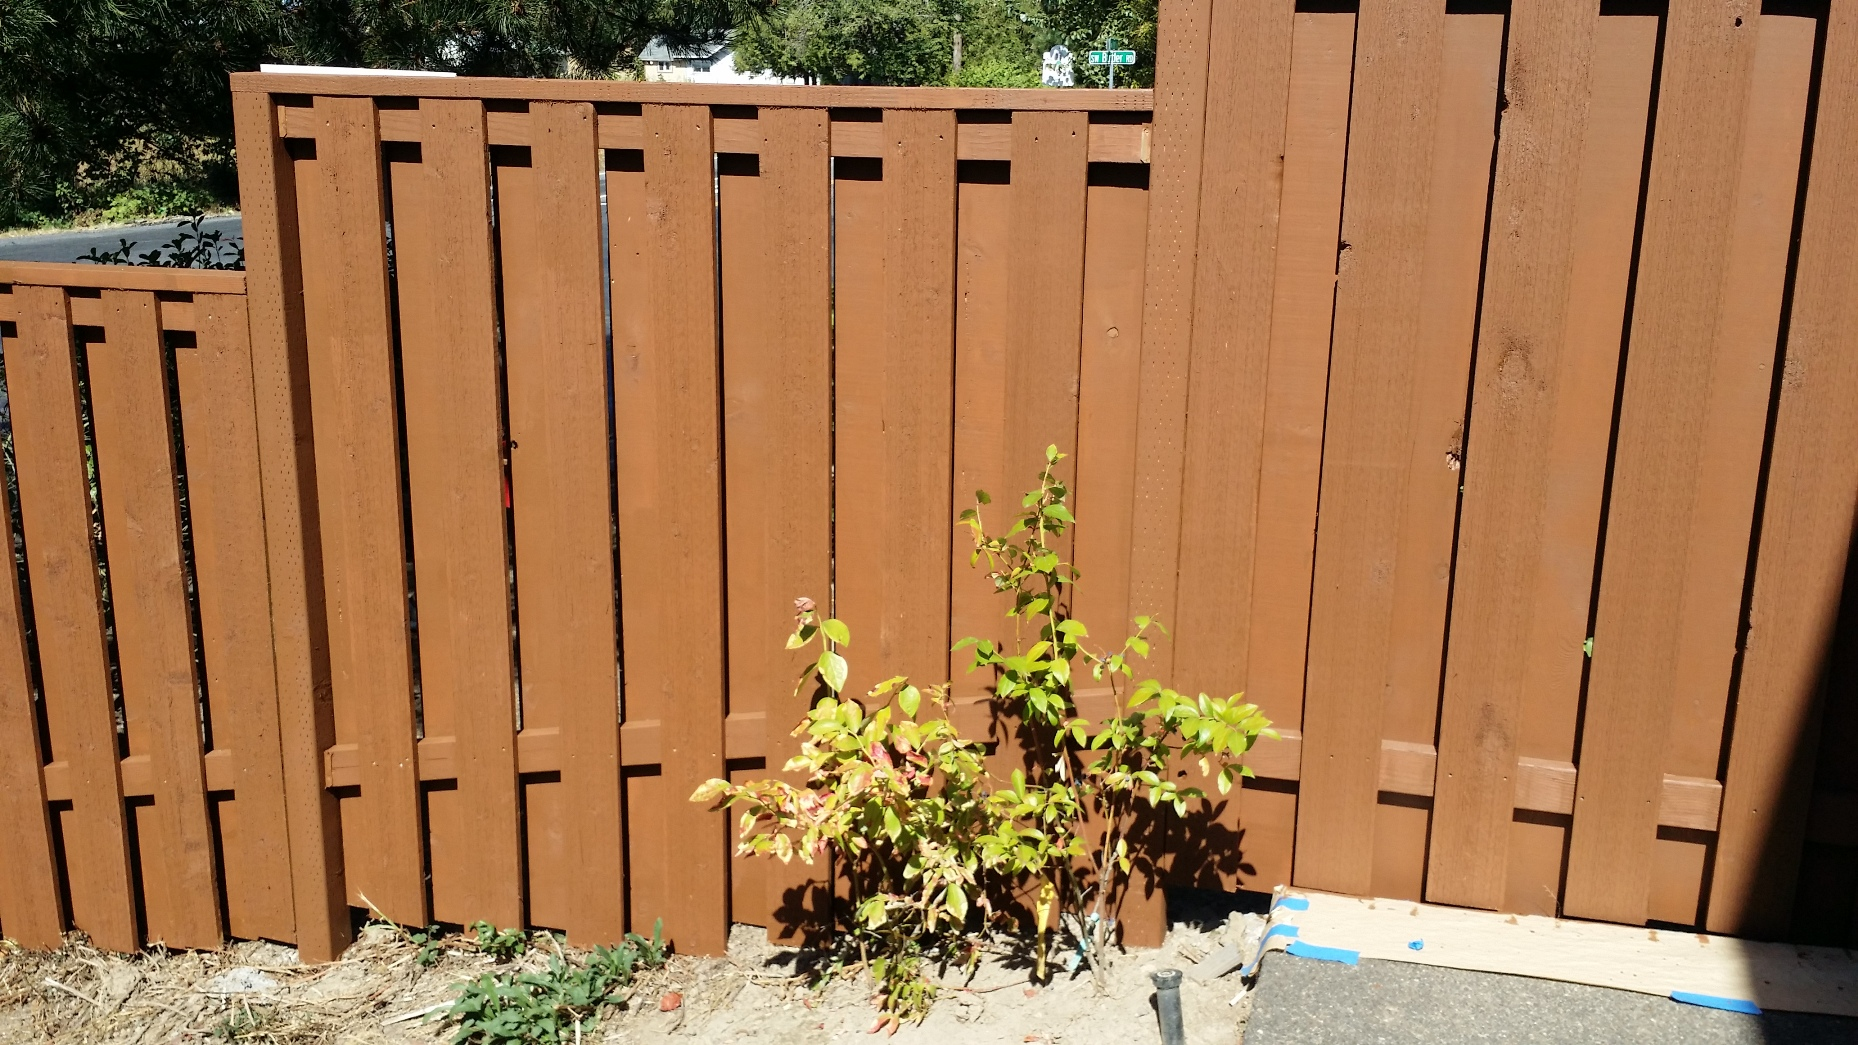 Newark fence repair quote, Newark fence contractor, Newark fencing company, Fence Repair Newark, Newark fencing repair